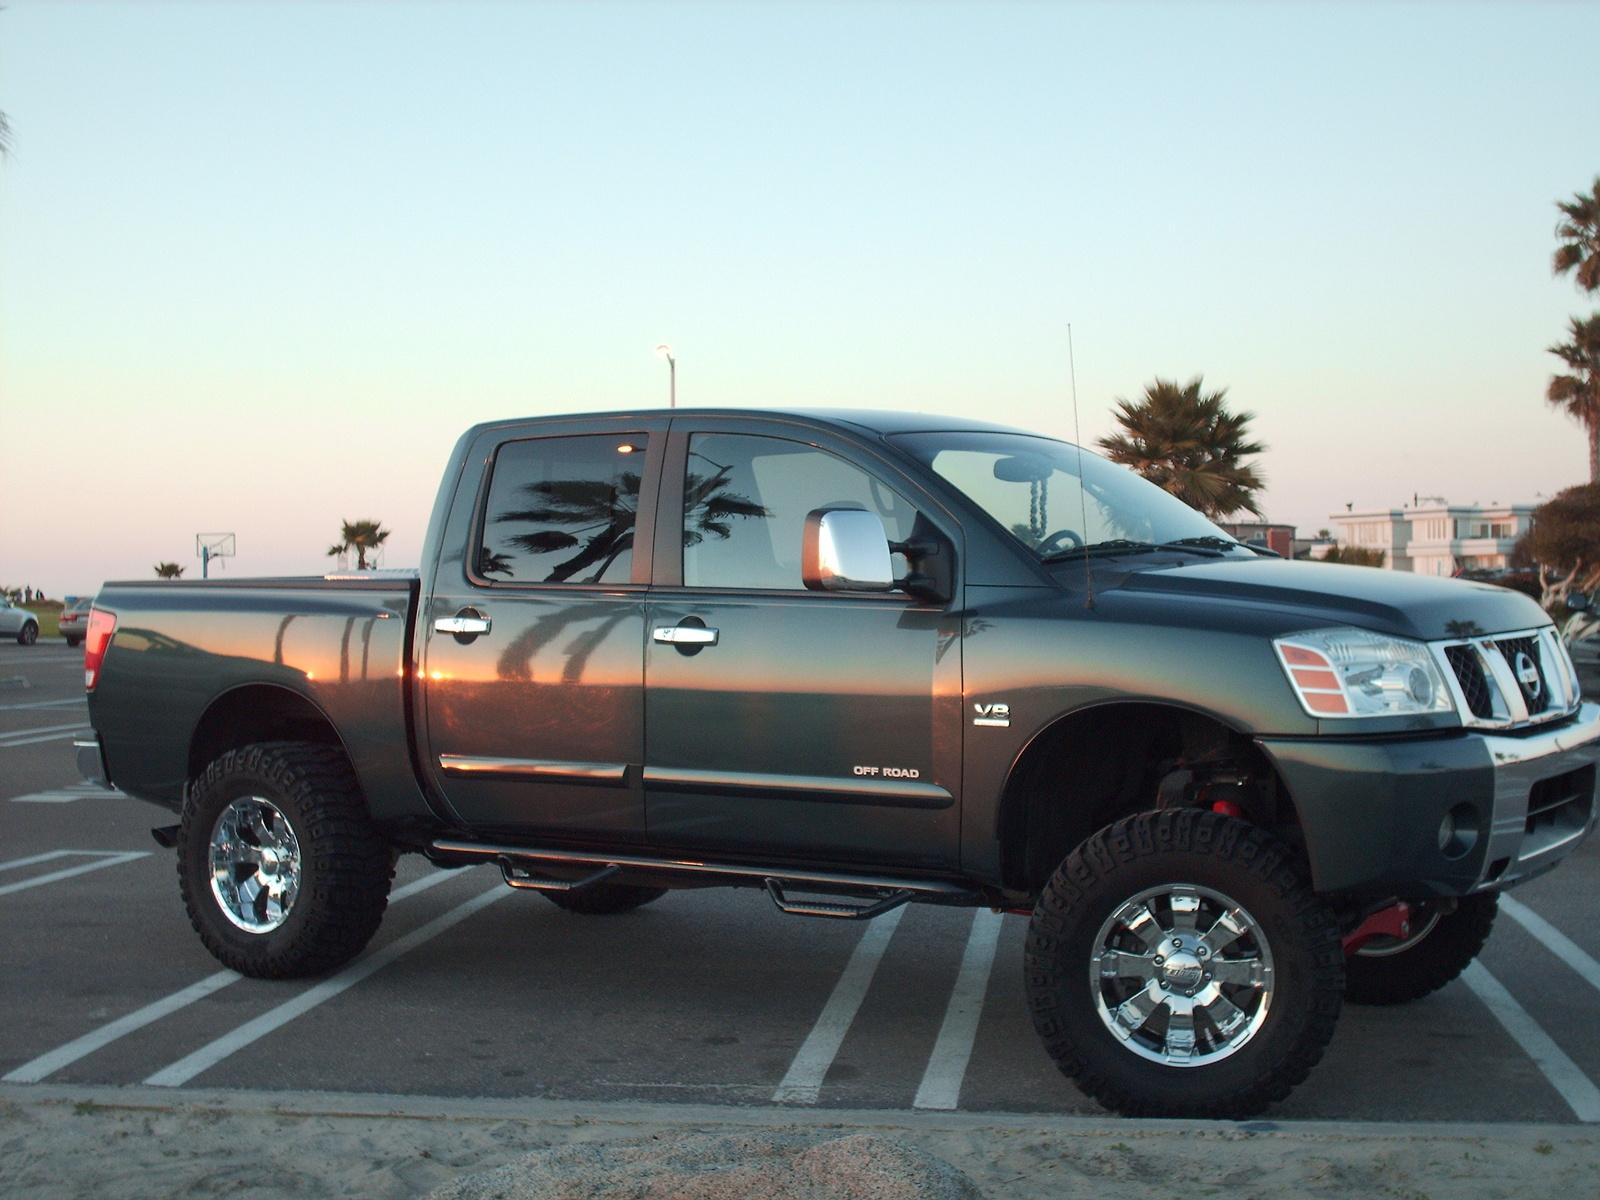 2004 nissan titan white gallery hd cars wallpaper 2004 nissan titan information and photos zombiedrive 800 1024 1280 1600 origin 2004 nissan titan vanachro vanachro Gallery